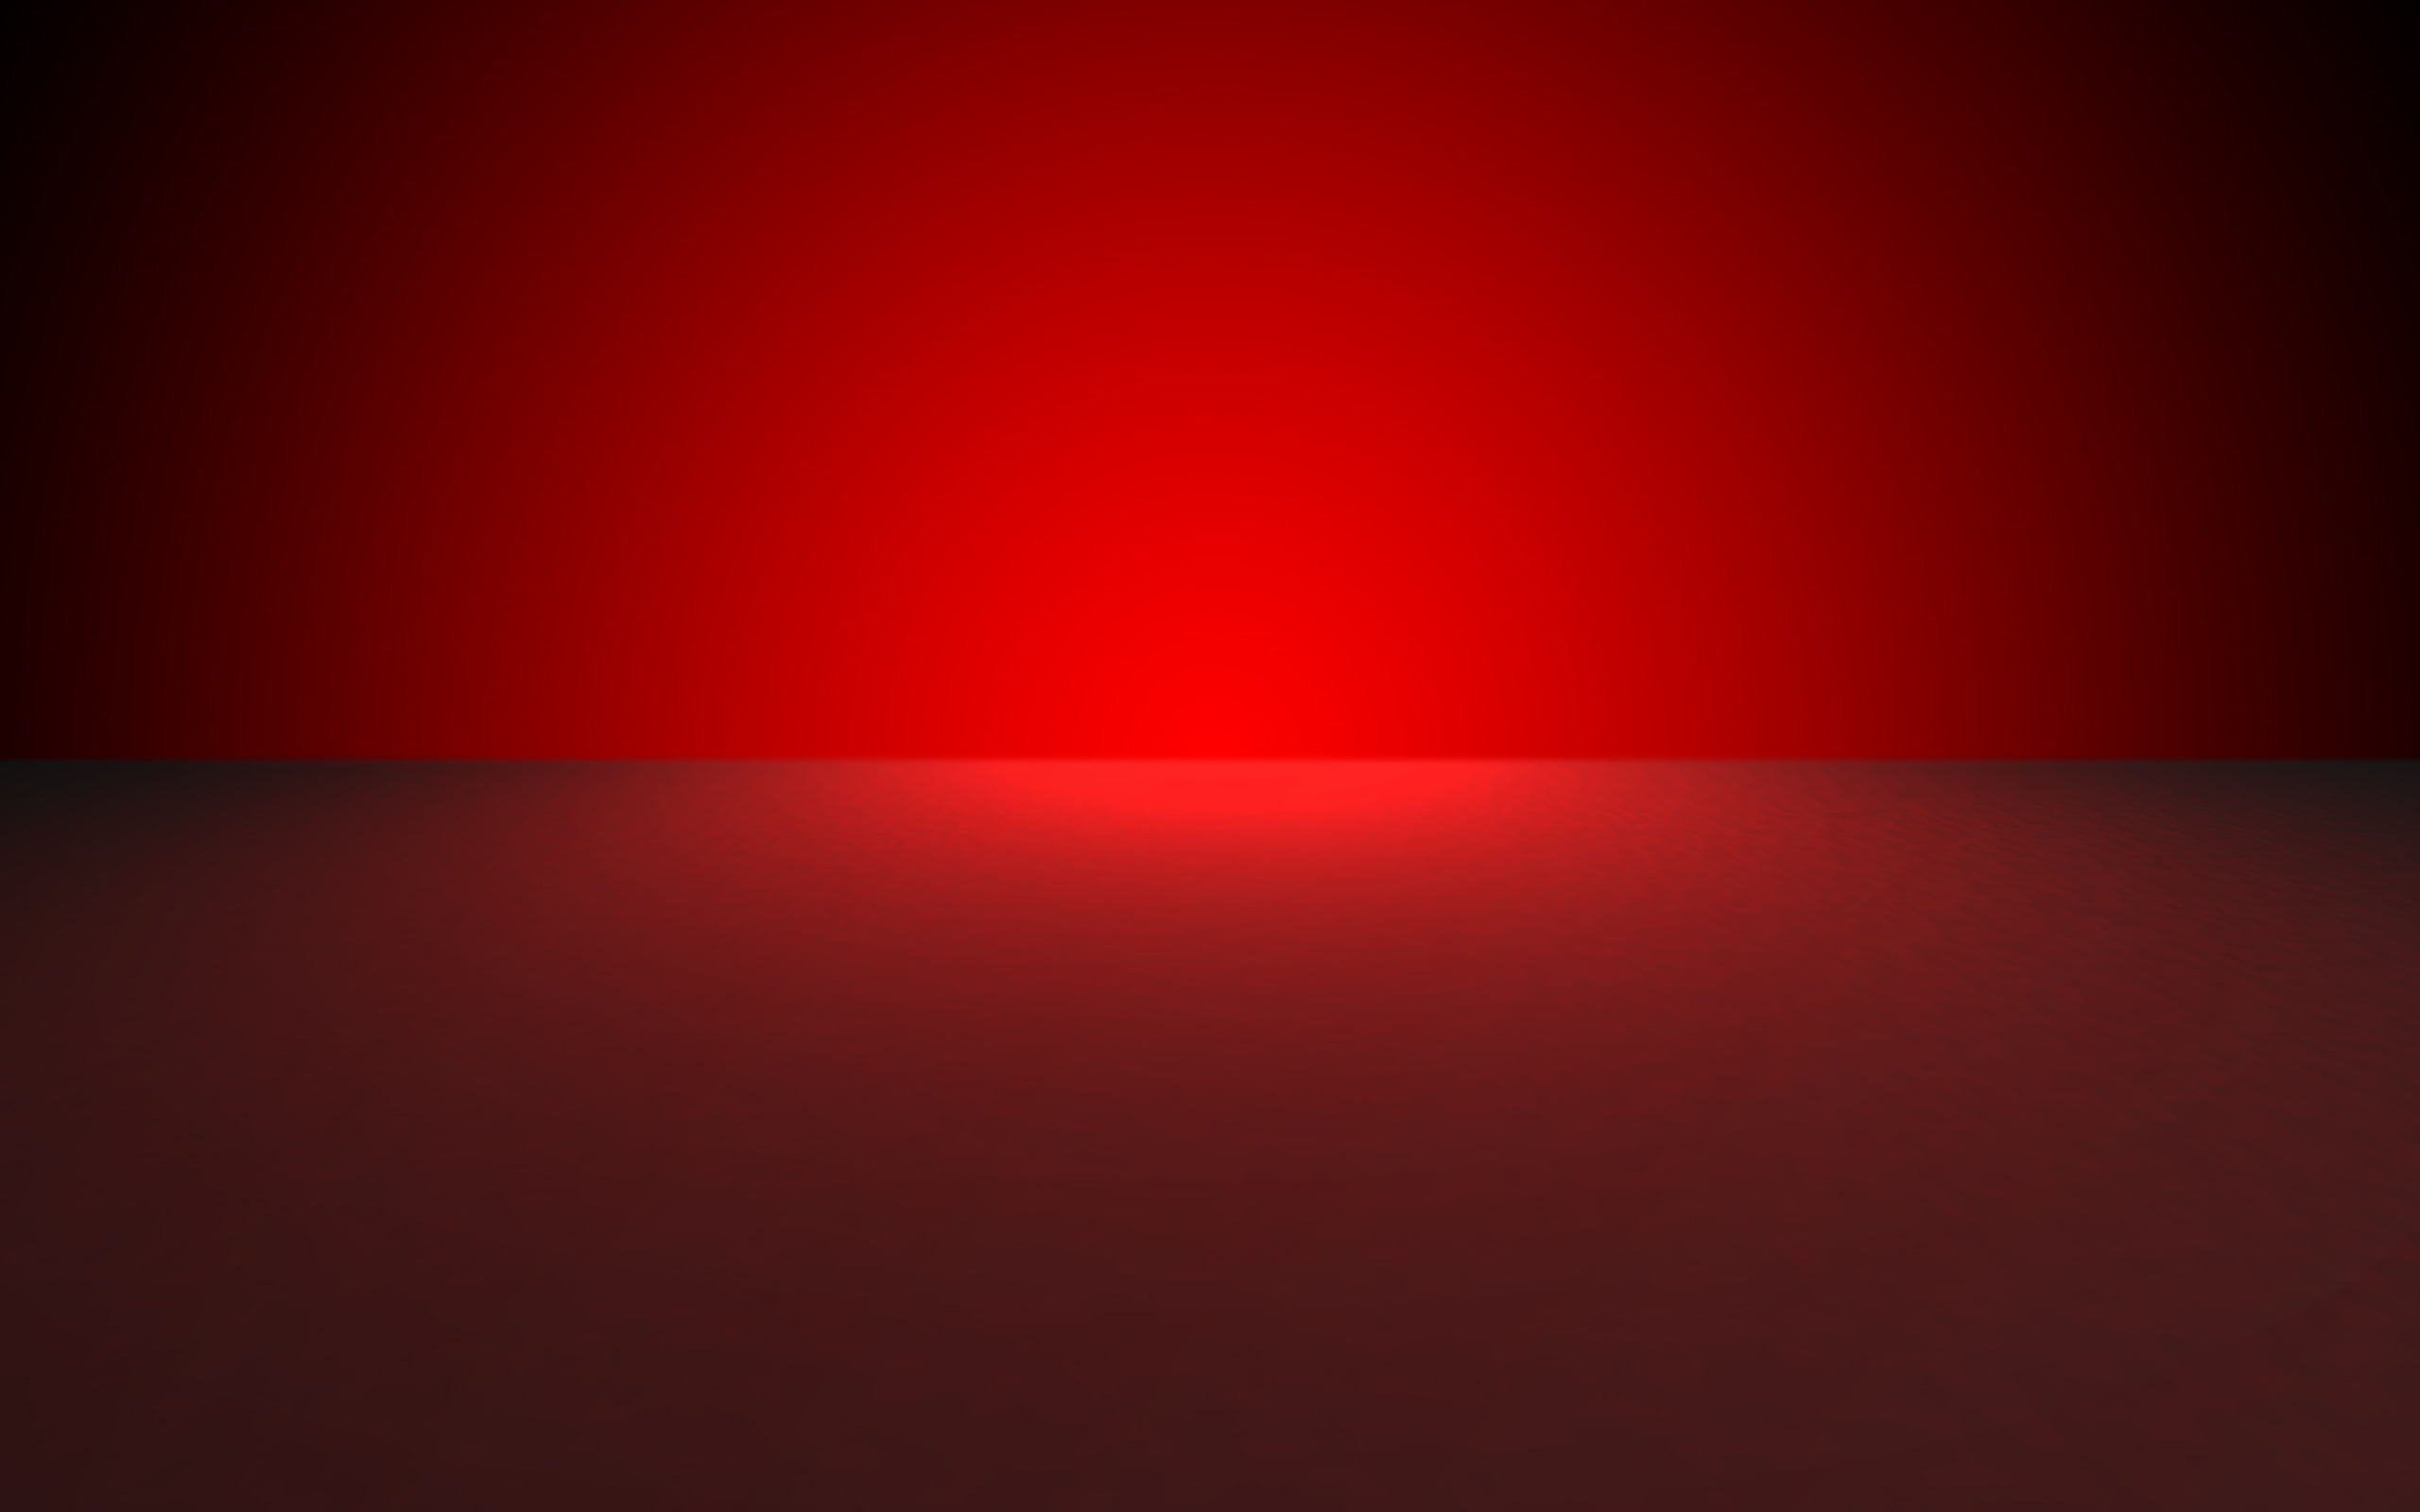 Red and black background 25 cool wallpaper - Cool red and black wallpapers ...